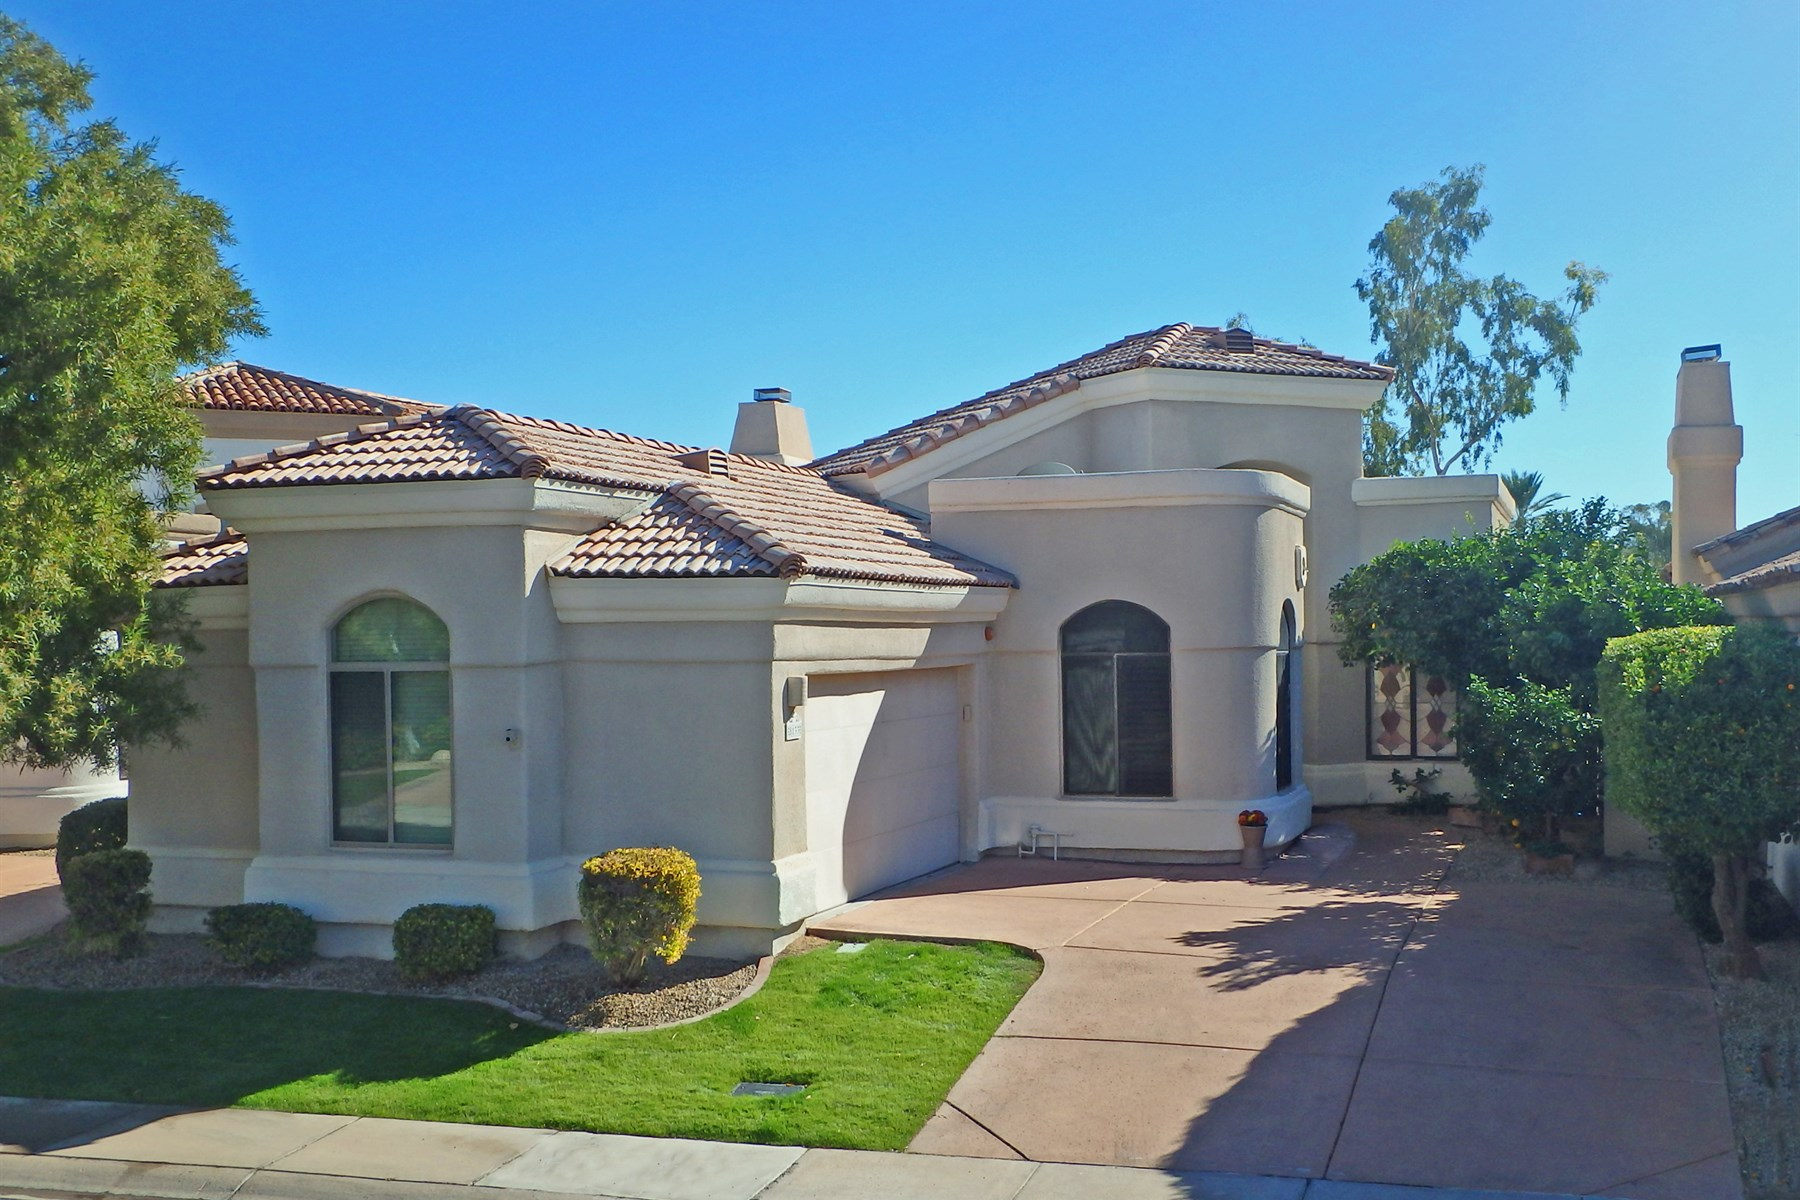 Maison unifamiliale pour l Vente à Rare Monterey Semi-Custom Home With Full Finished Basement 8133 E Cortez Drive Scottsdale, Arizona 85260 États-Unis